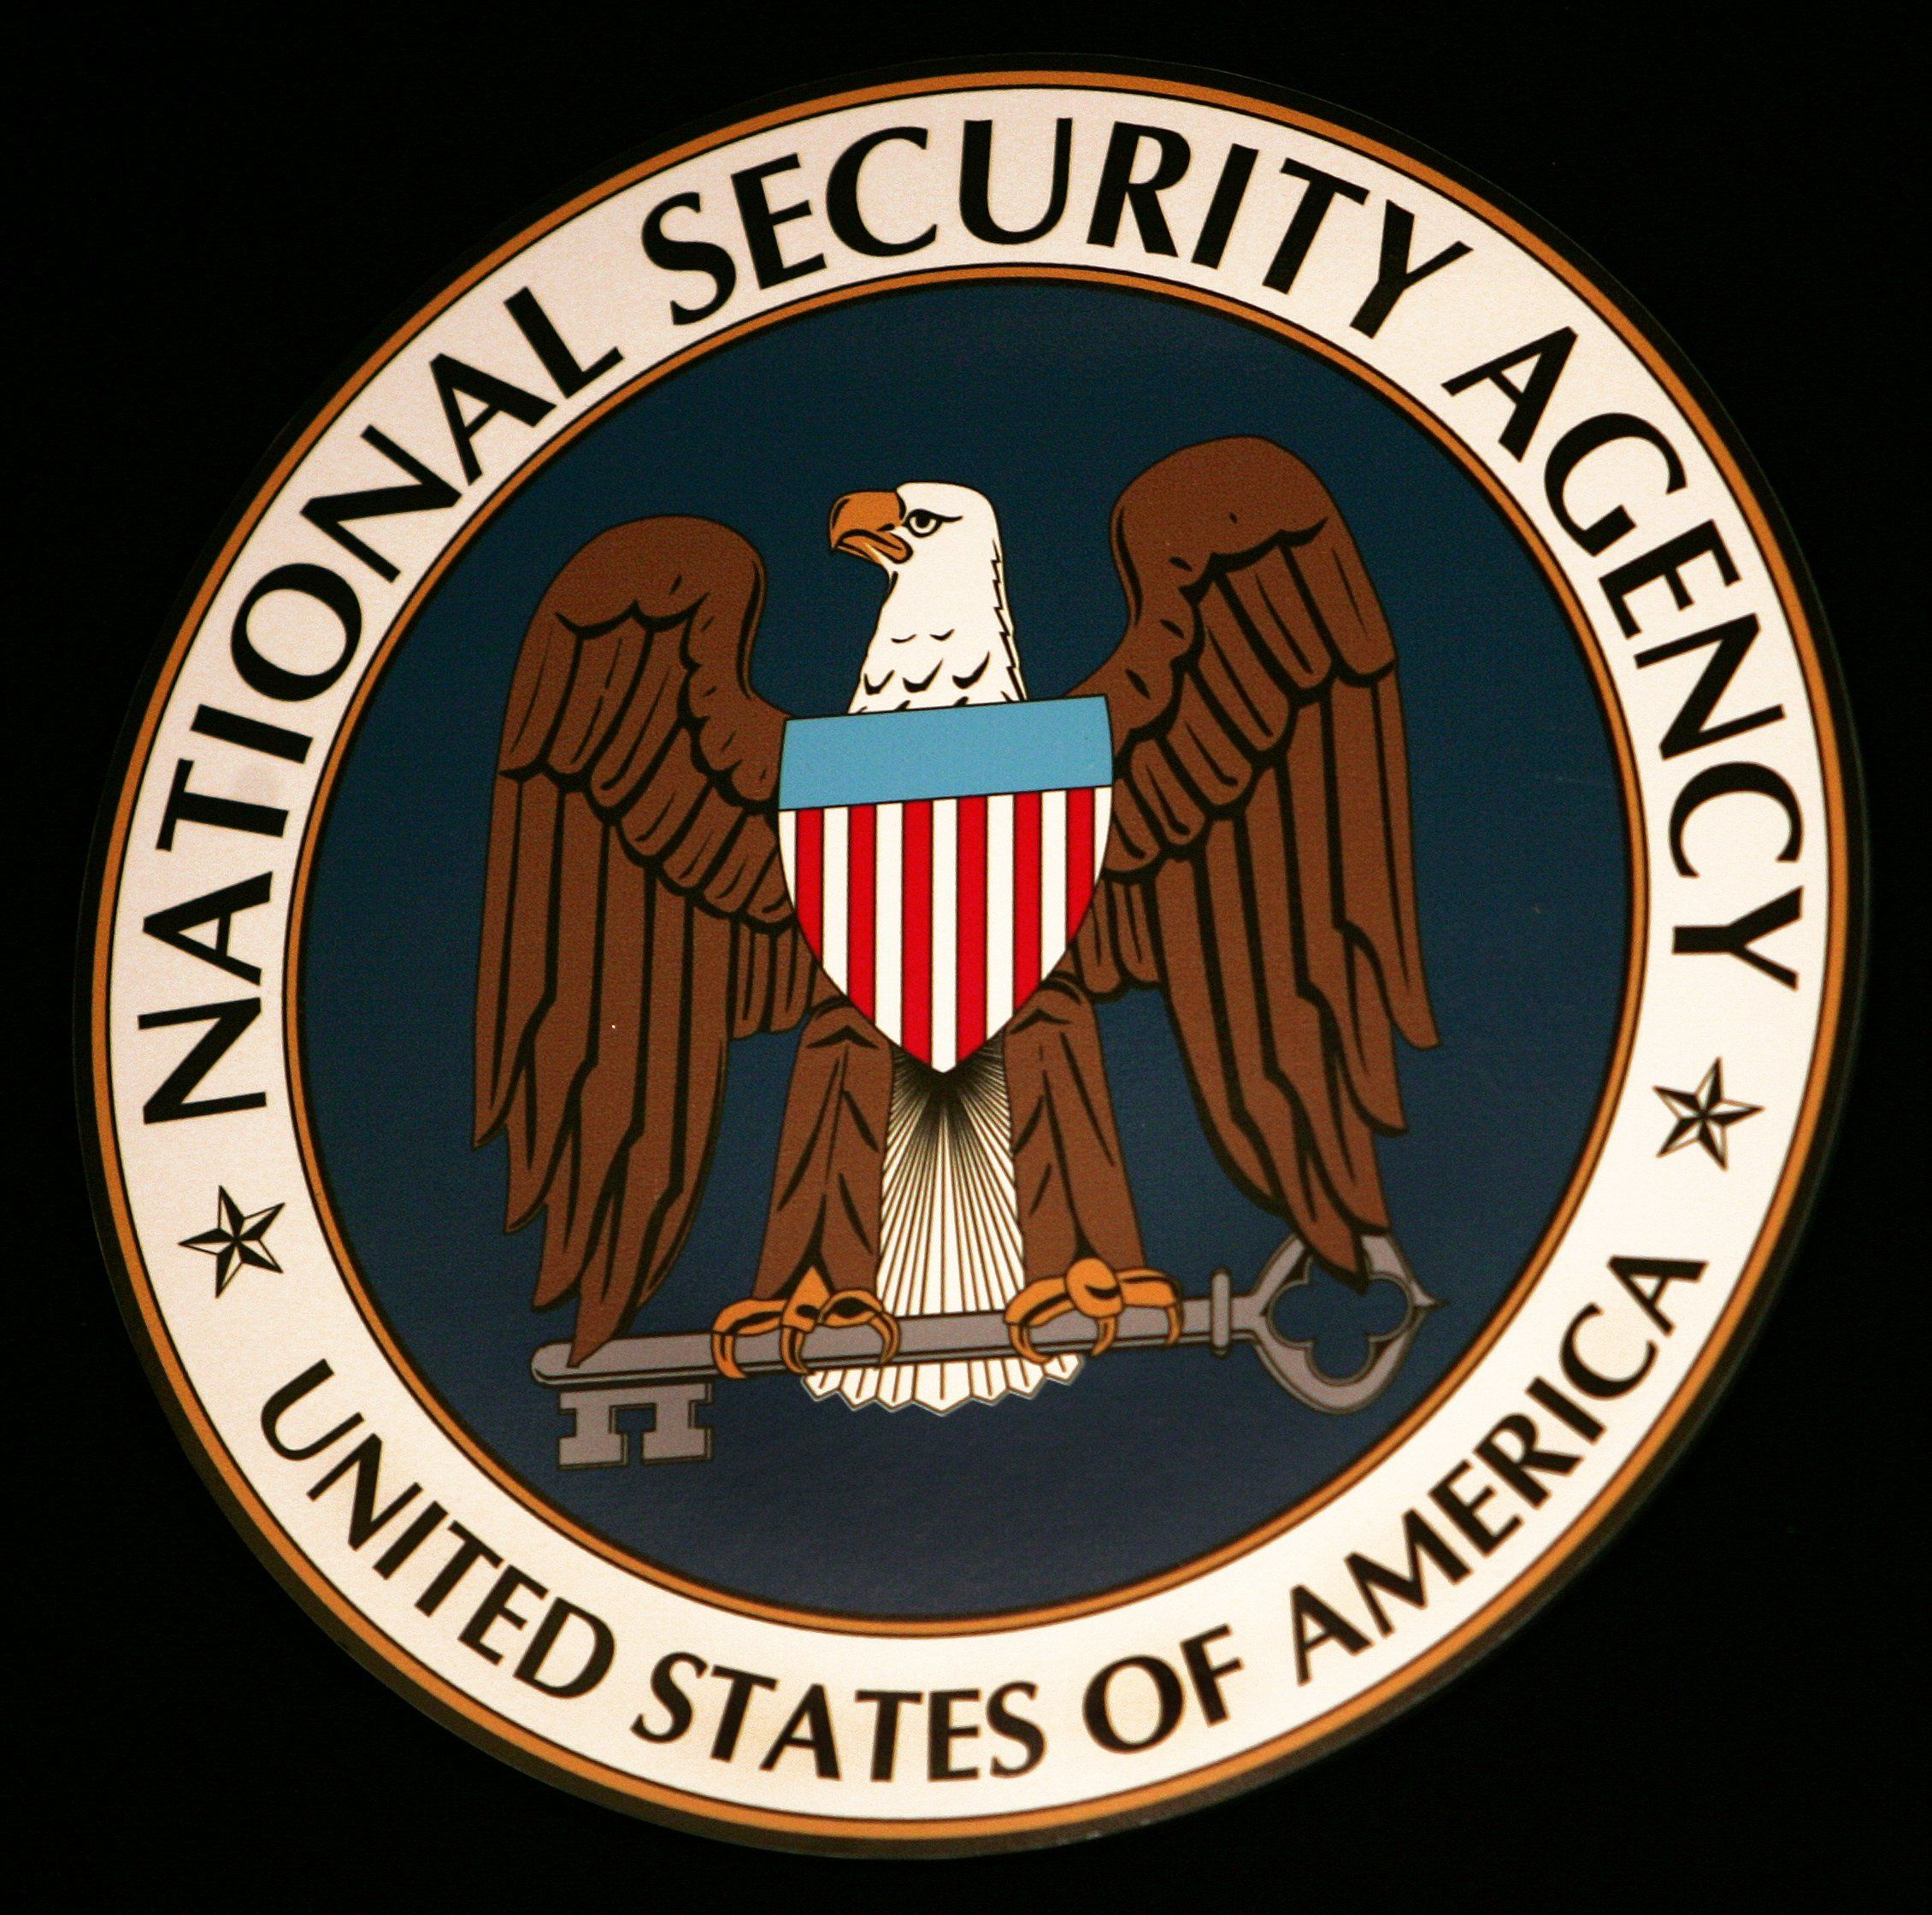 Former NSA Employee Pleads Guilty to Keeping Top Secret